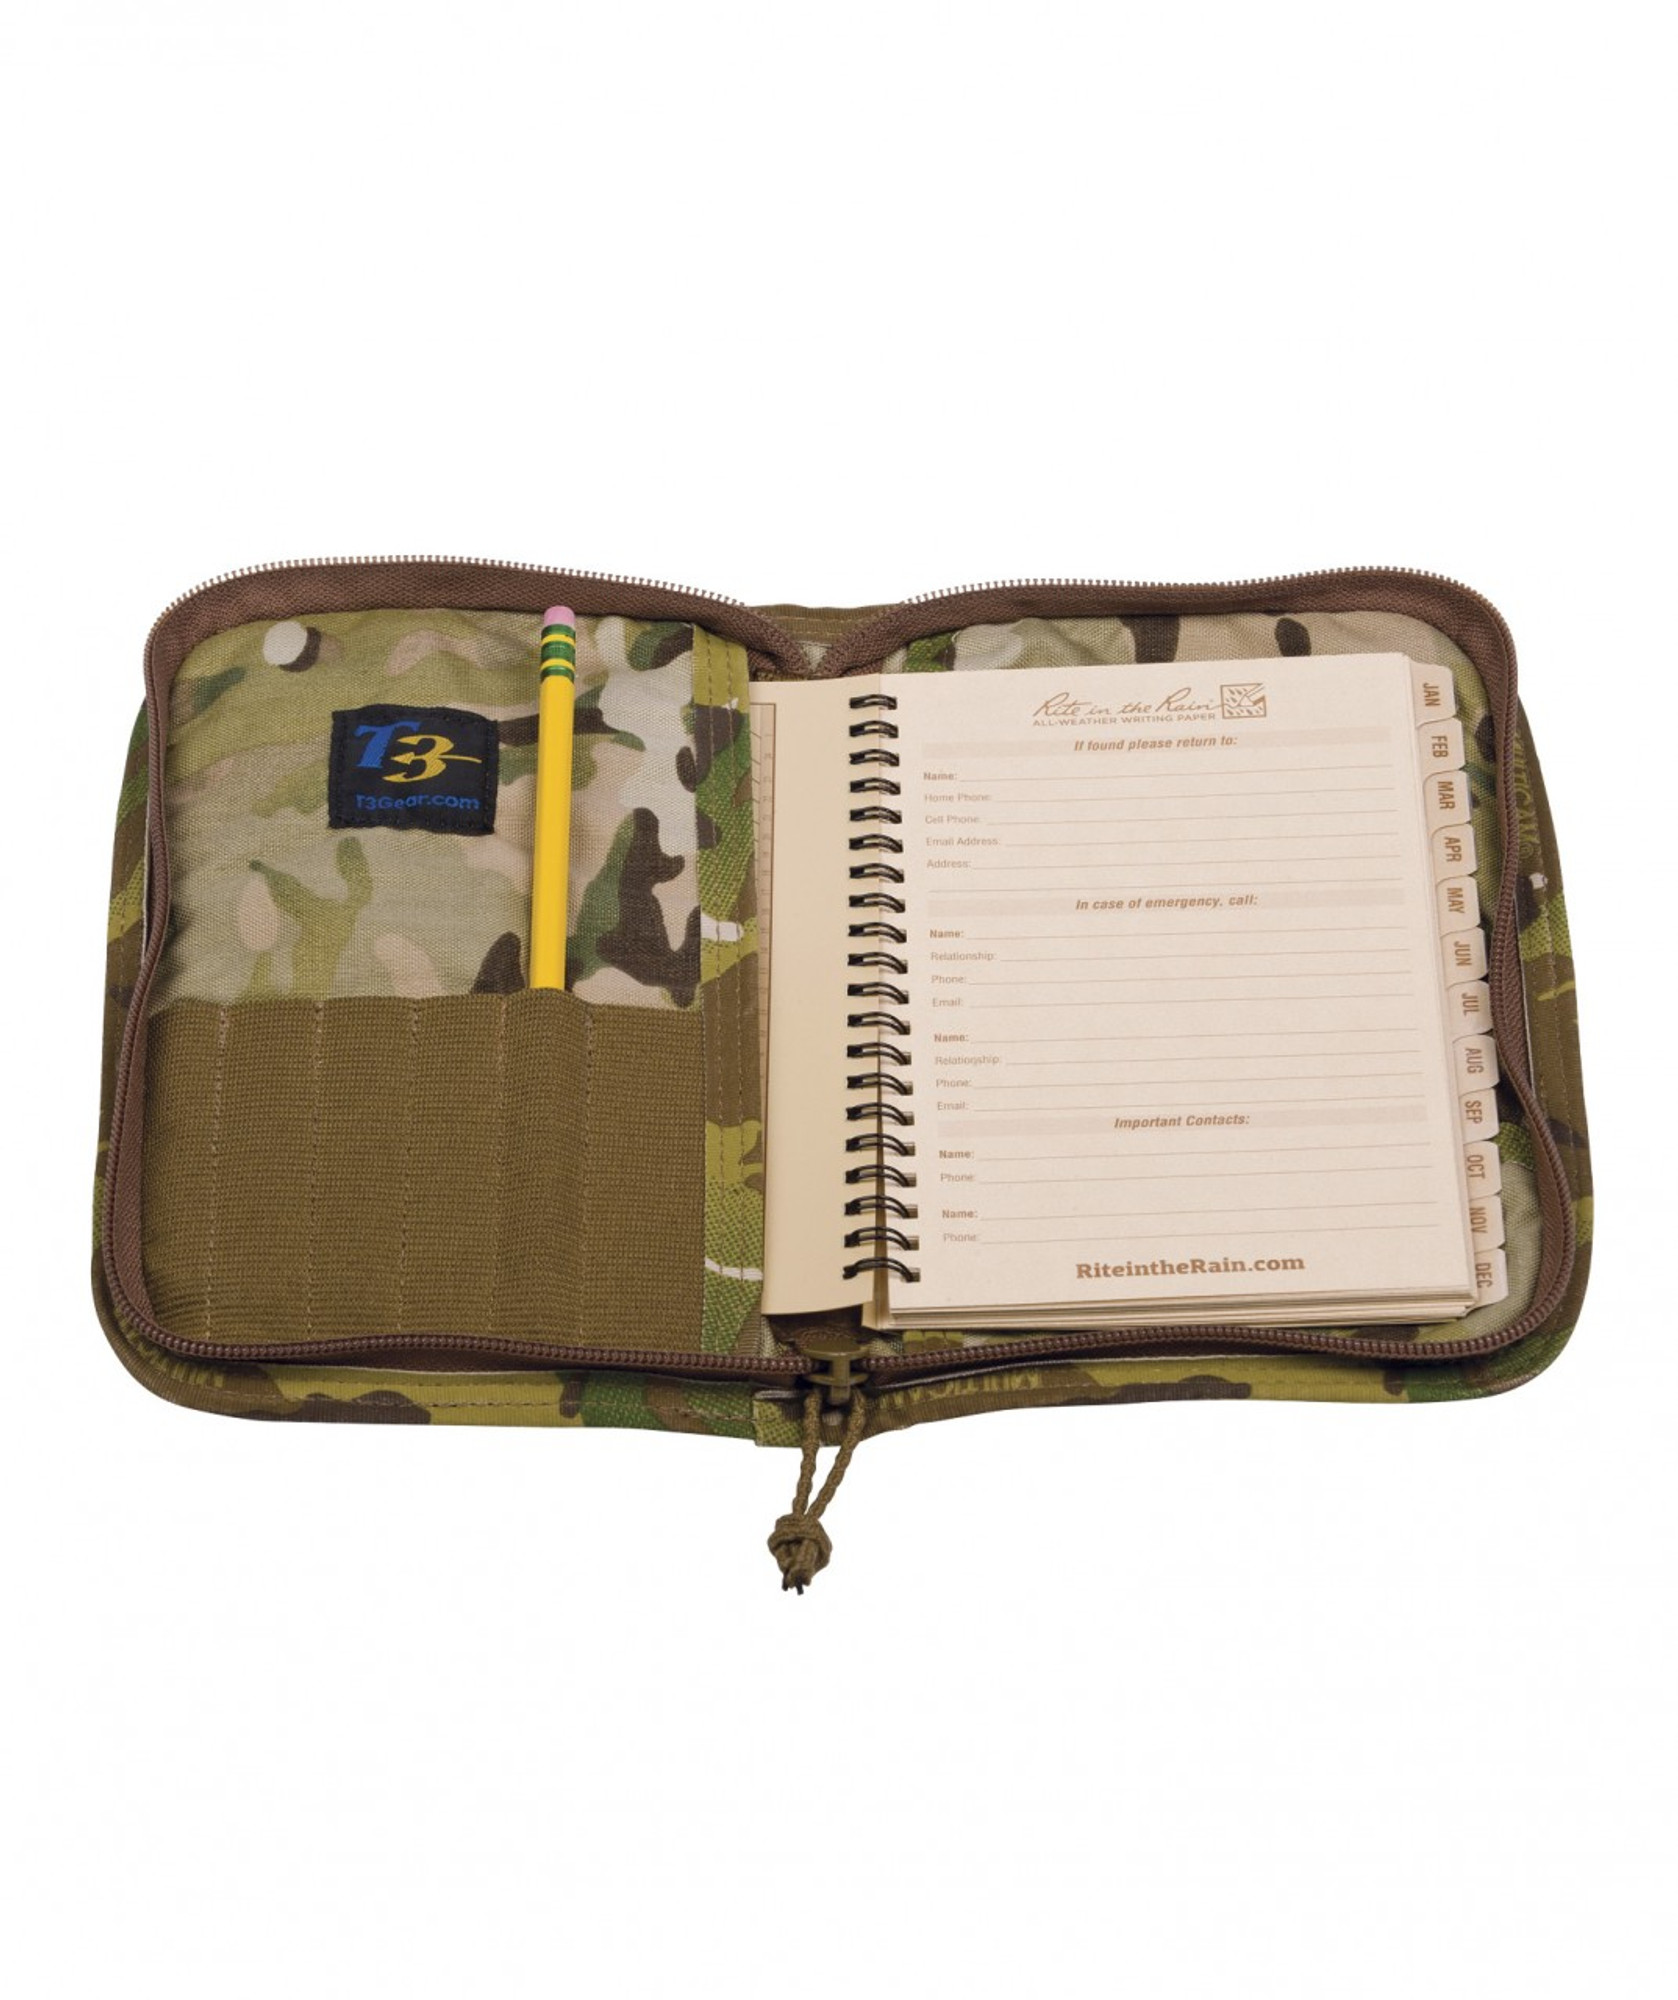 eccb35406e T3 Data Book Cover - T3 Gear